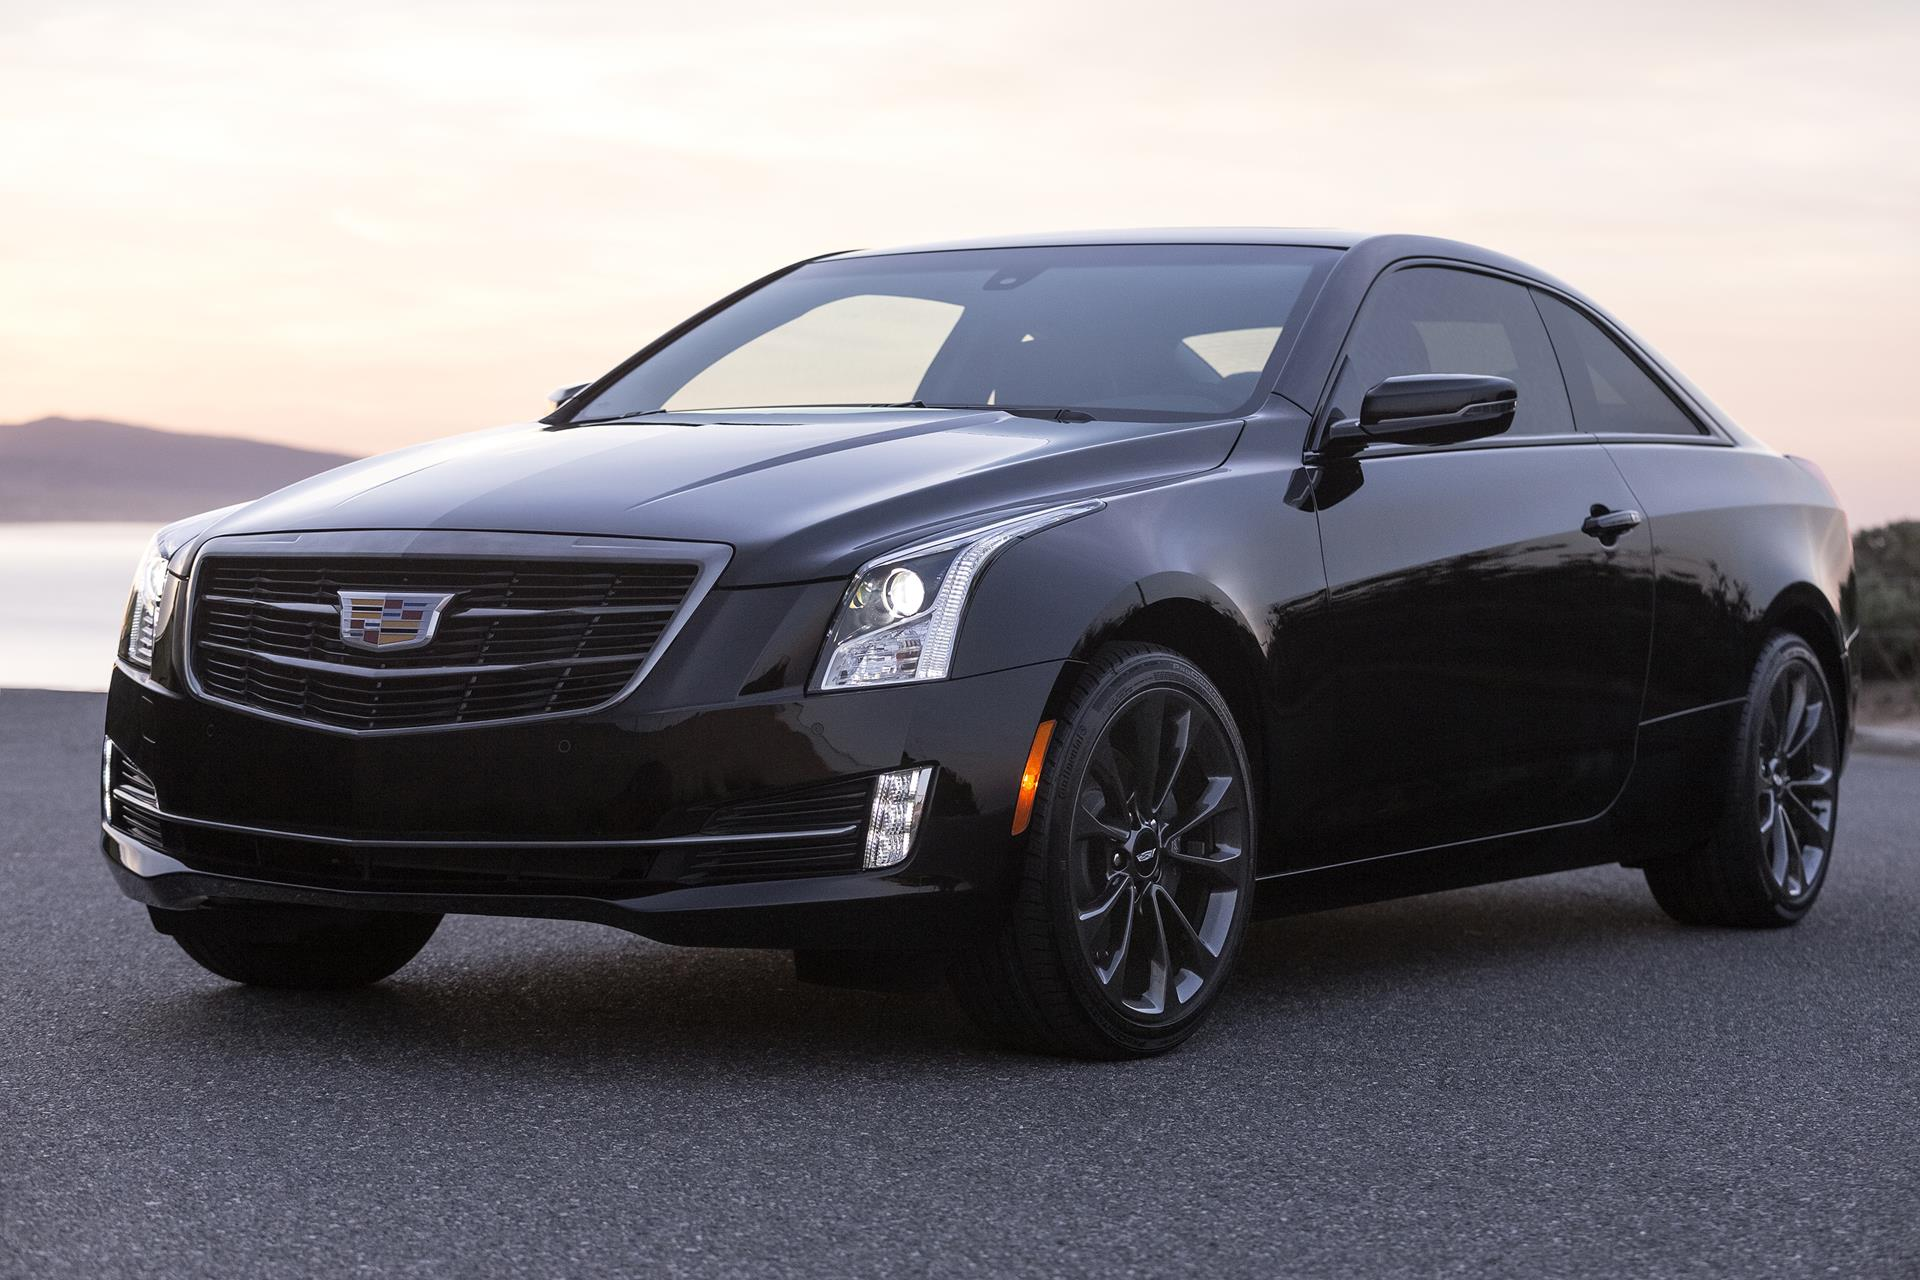 2016 Cadillac ATS Black Chrome Package News And Information